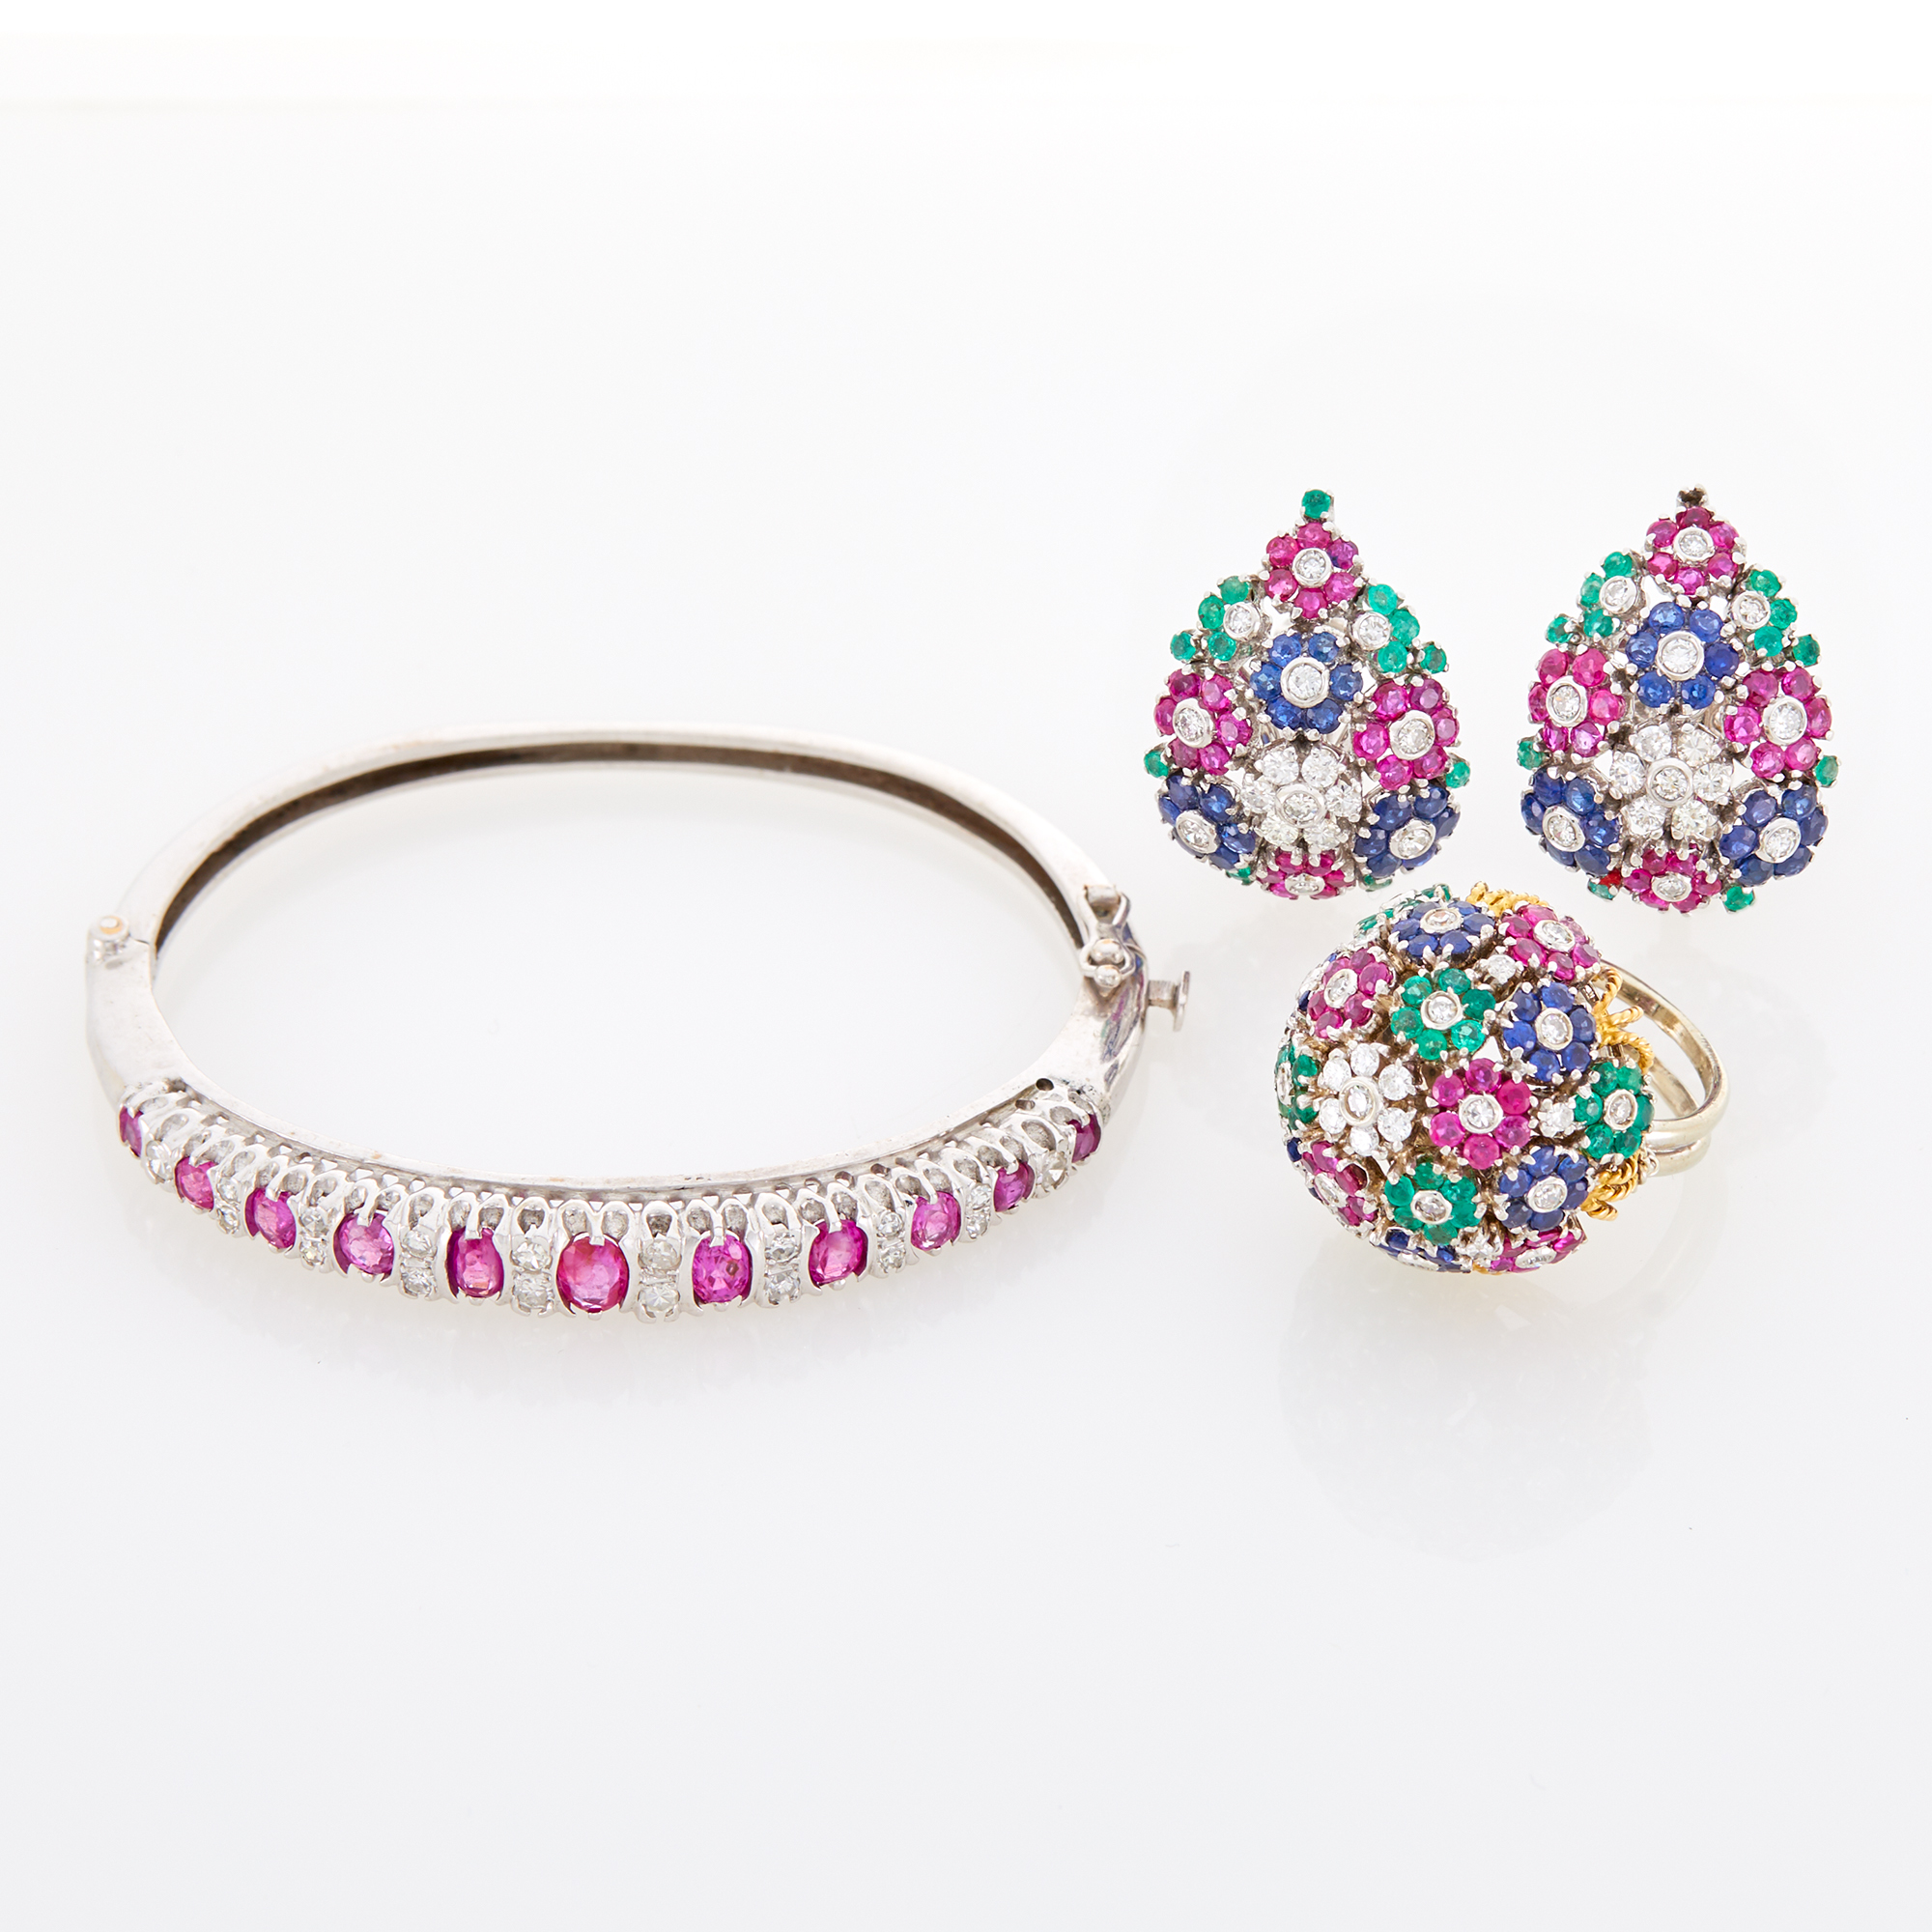 Lot image - White Gold, Ruby and Diamond Bangle Bracelet and Pair of Diamond and Gem-Set Floret Earclips and Dome Ring